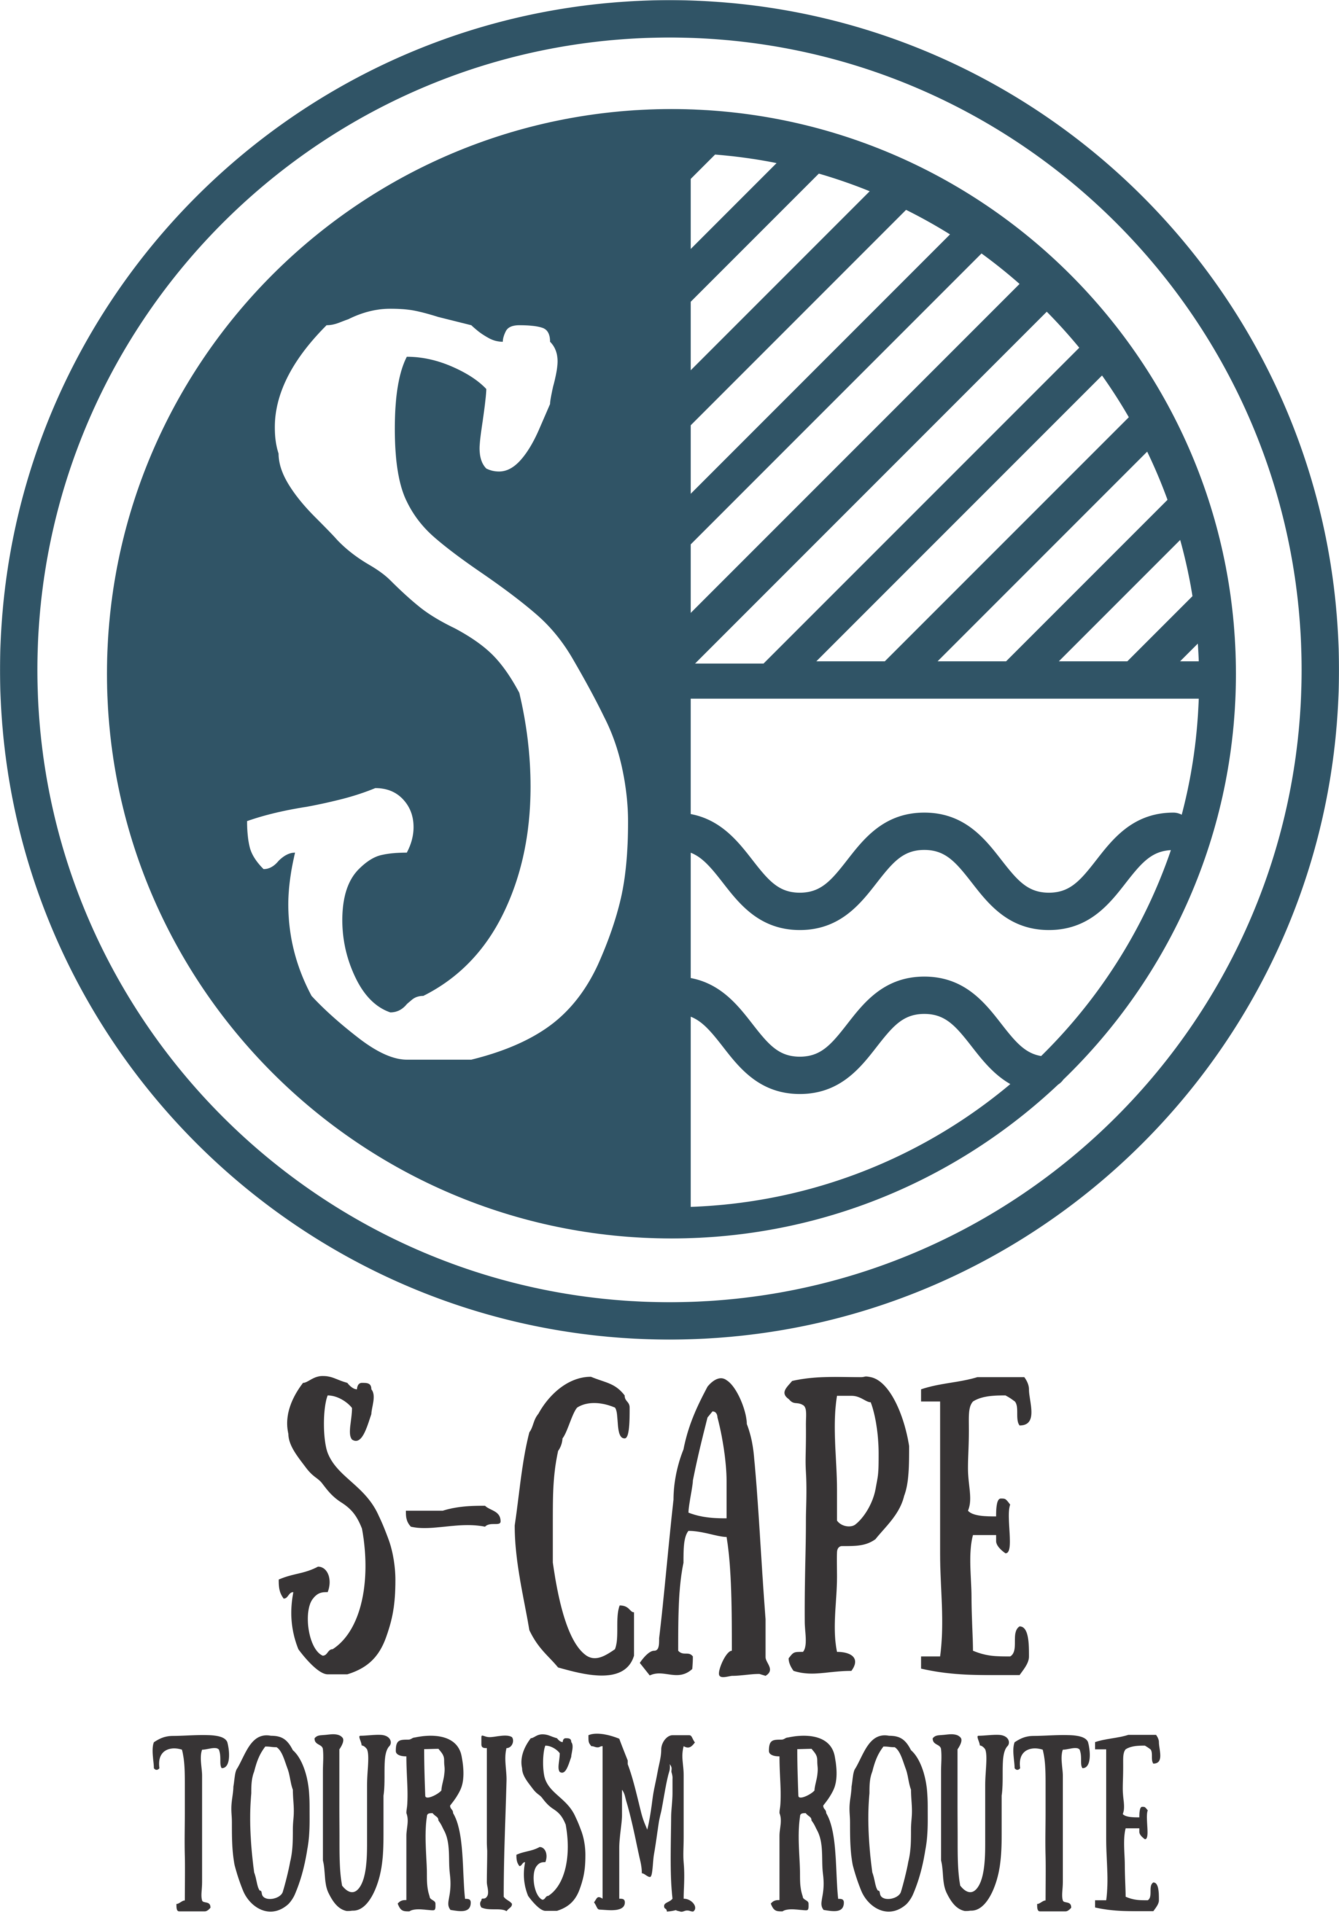 S-cape Tourism Route - Helderberg